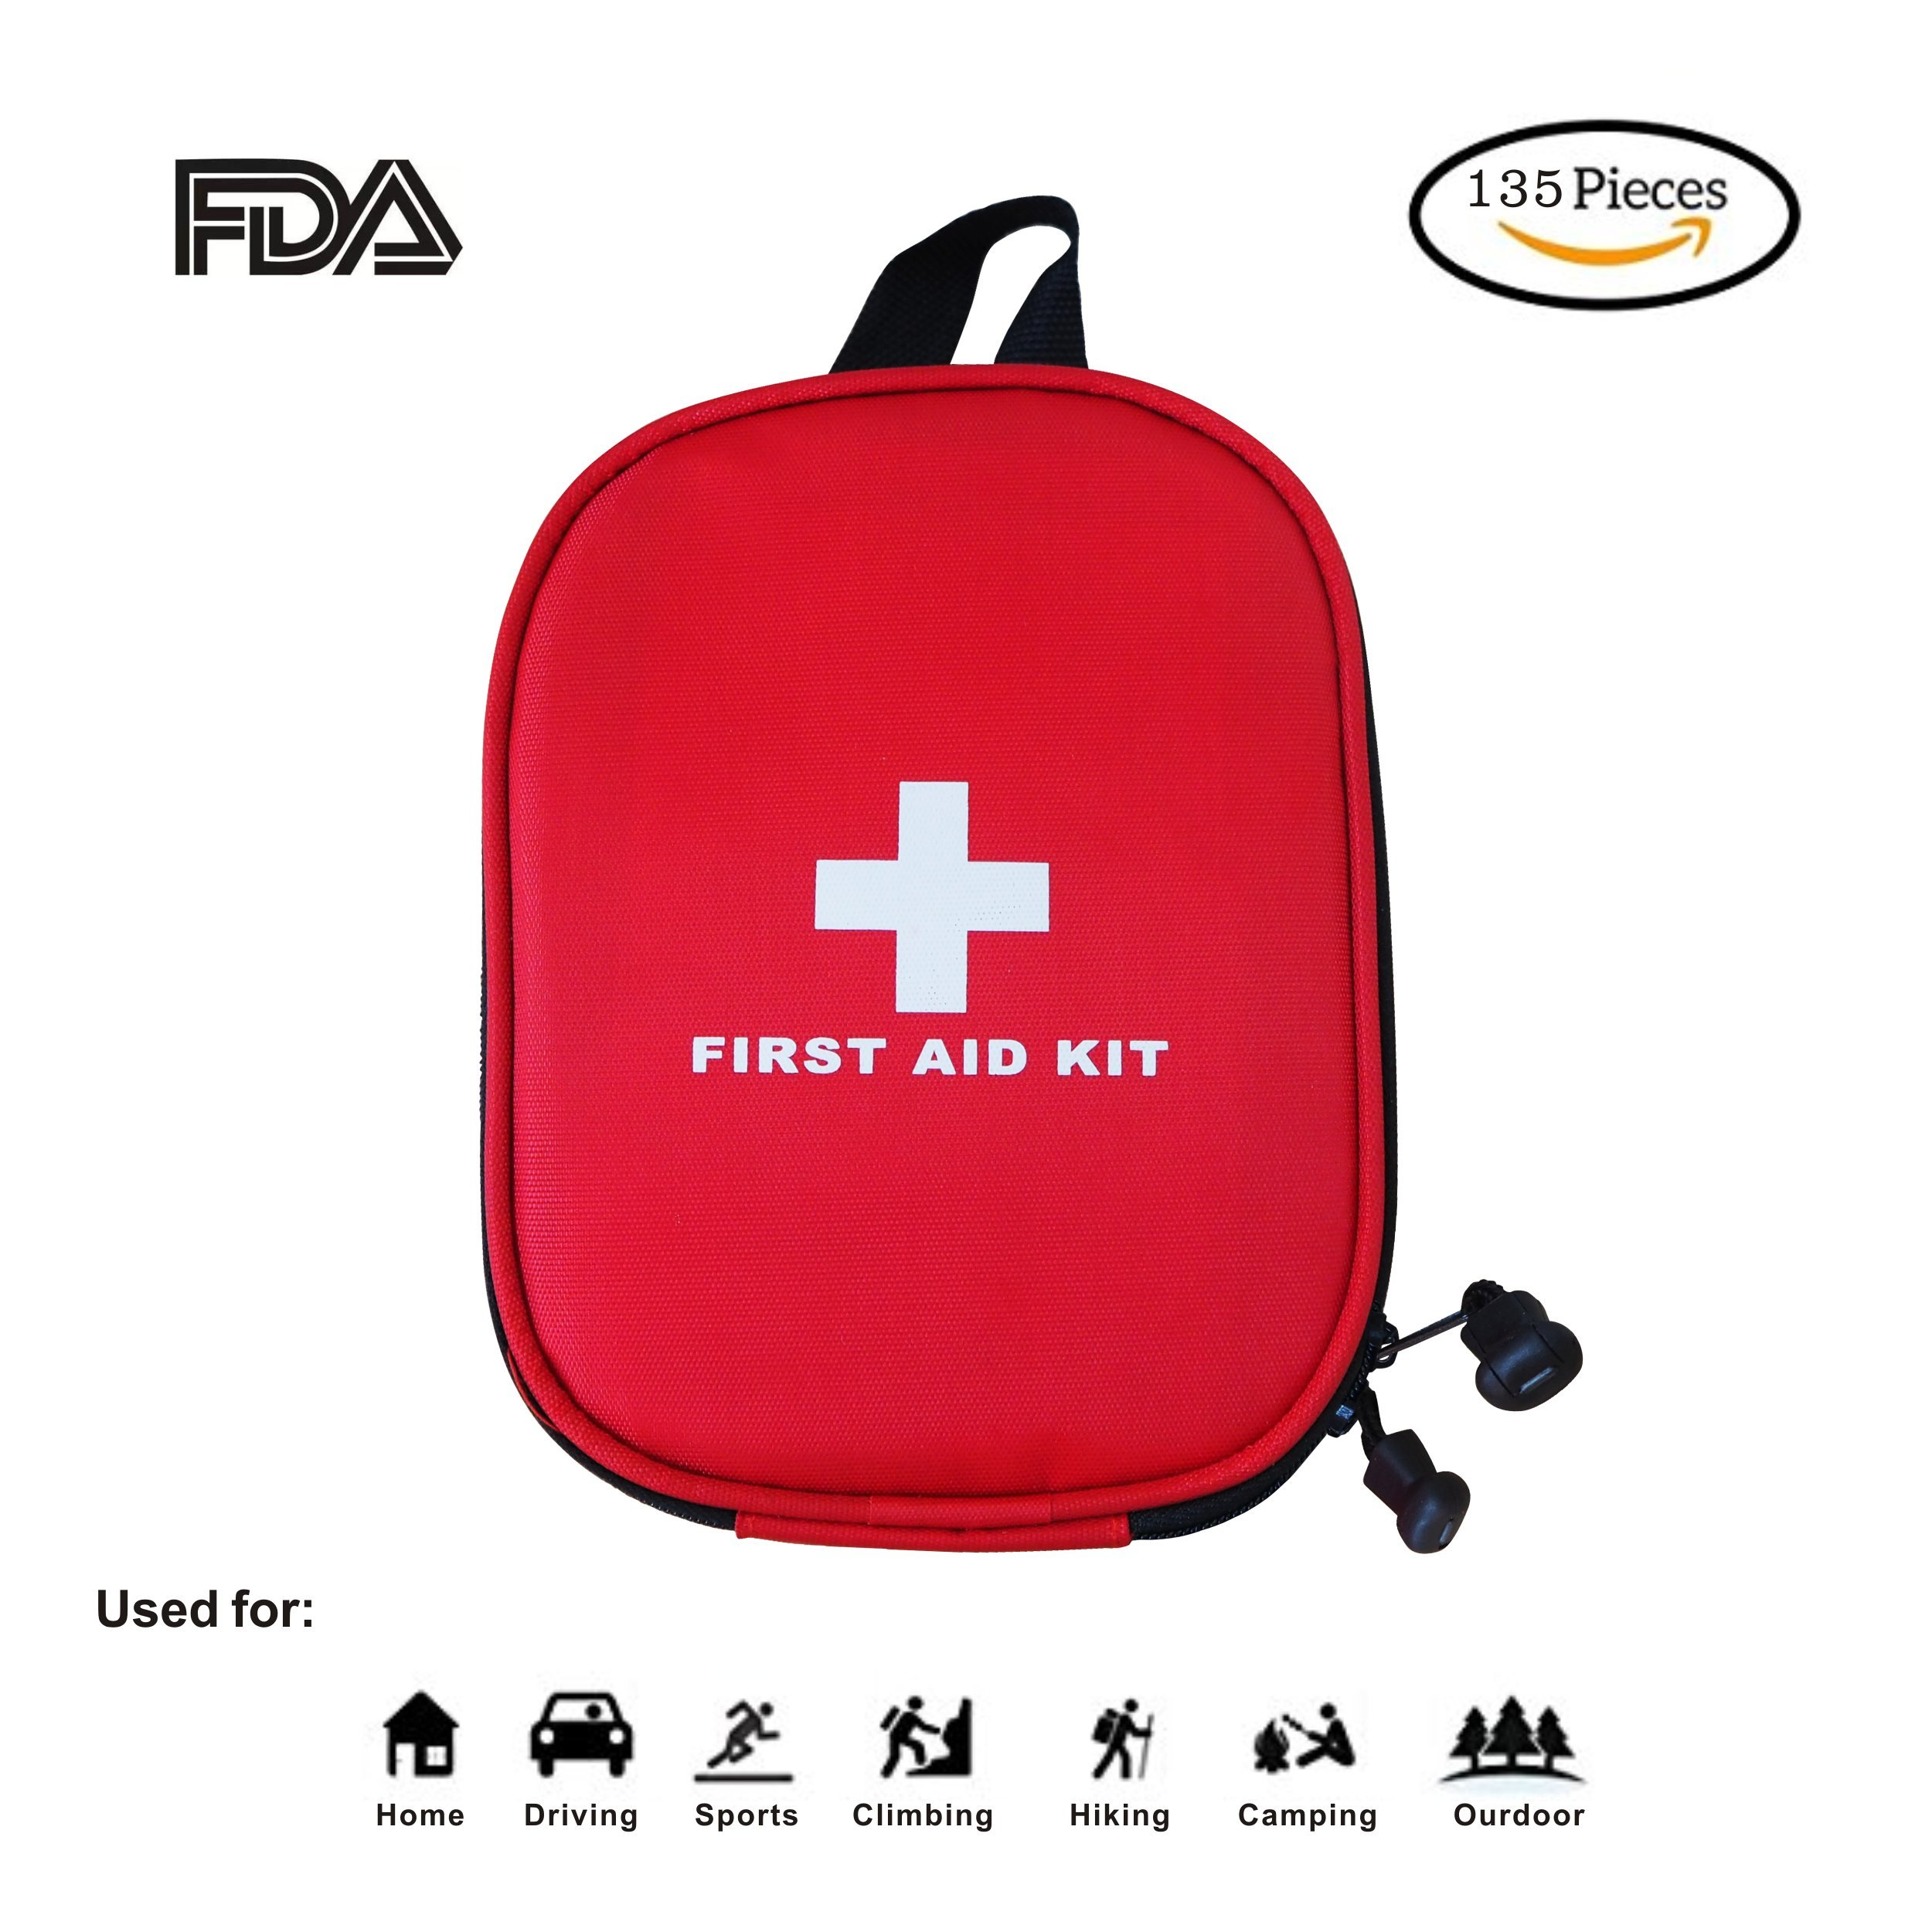 Bowin First Aid Kit - 123 piece - for Car,Travel, Sports, Camping, home,Hiking or Office   Complete Emergency Bag fully stocked with medical supplies